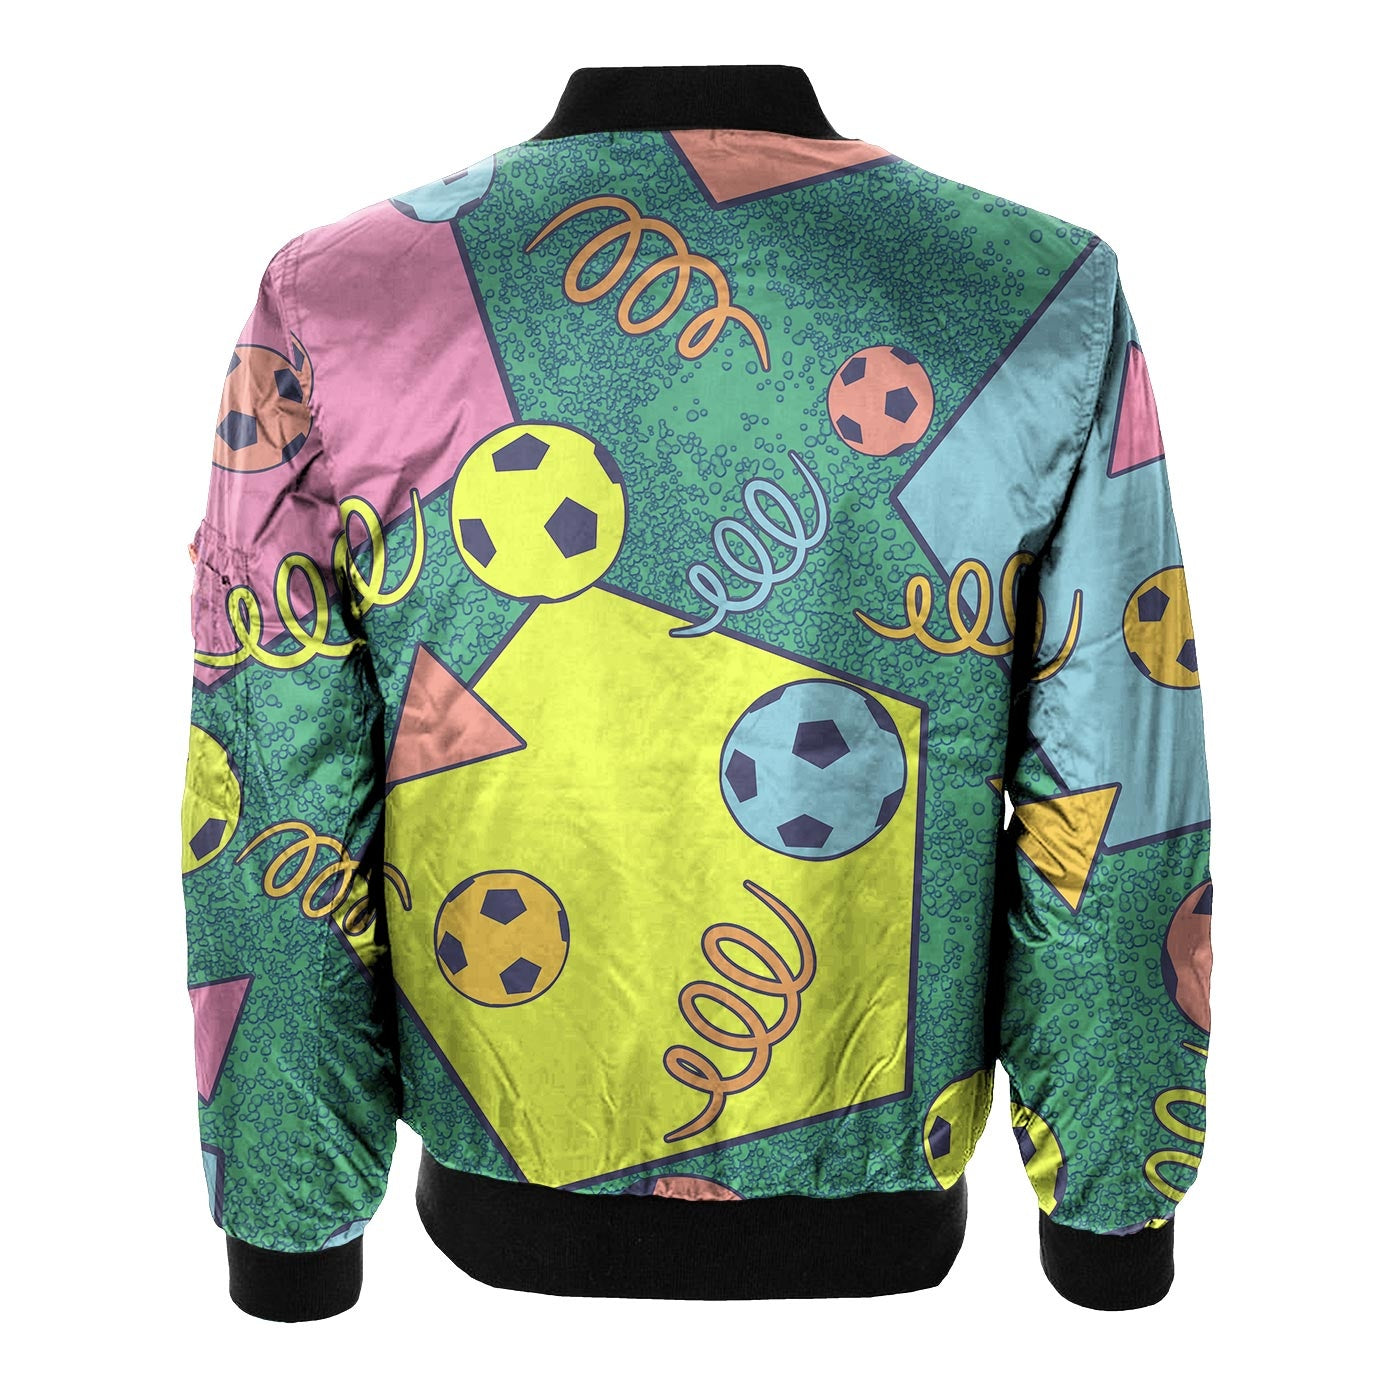 Football Bomber Jacket